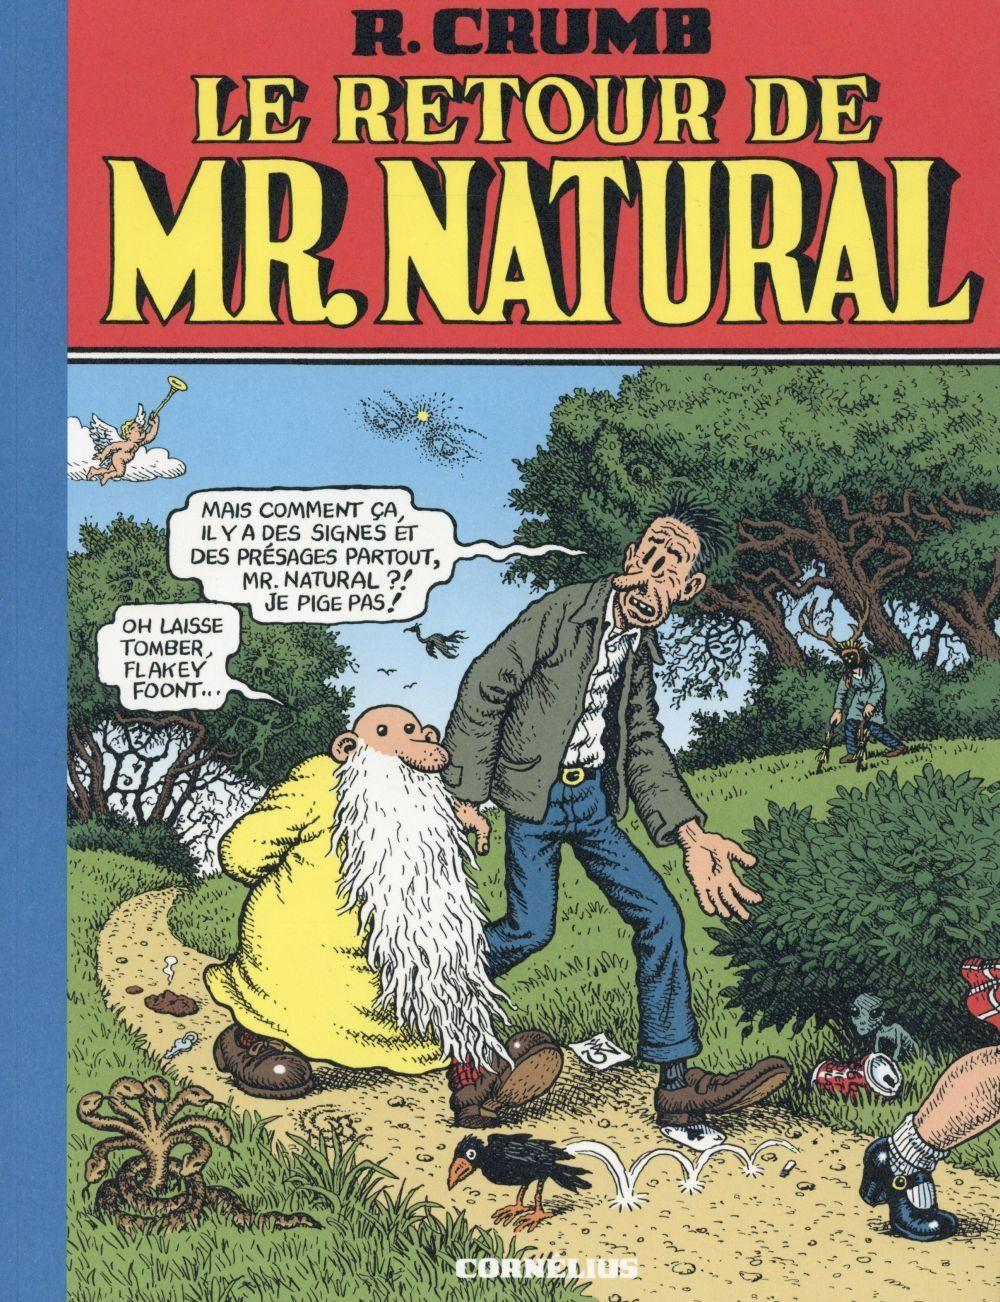 Le retour de Mr. Natural  - Robert Crumb